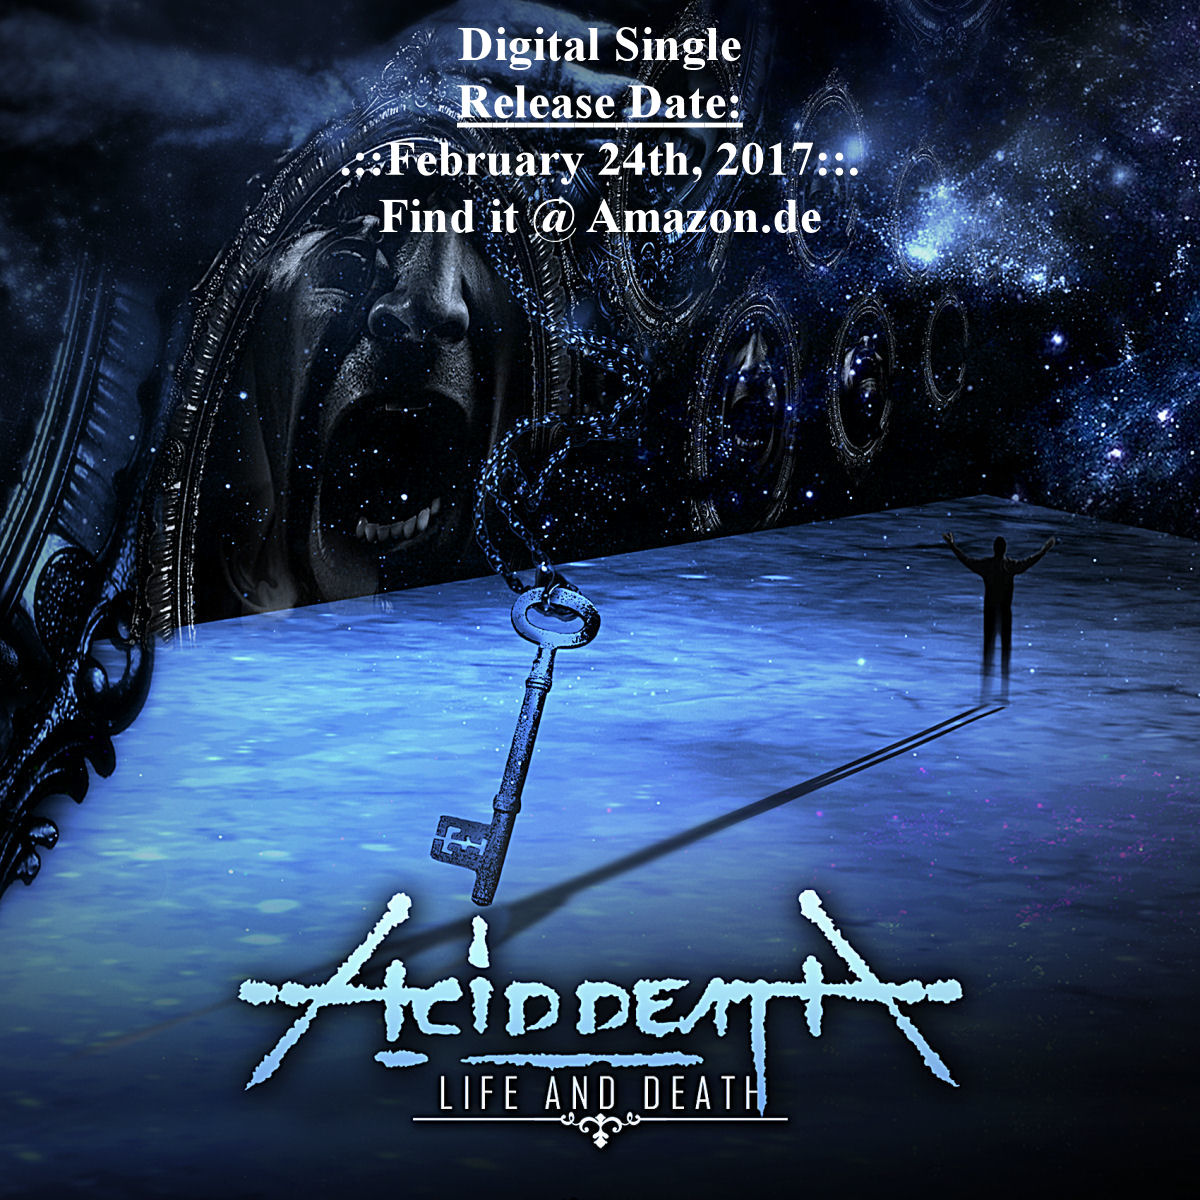 ACID DEATH - Life And Death feat. Jon Soti Digital Single 2017 amazon